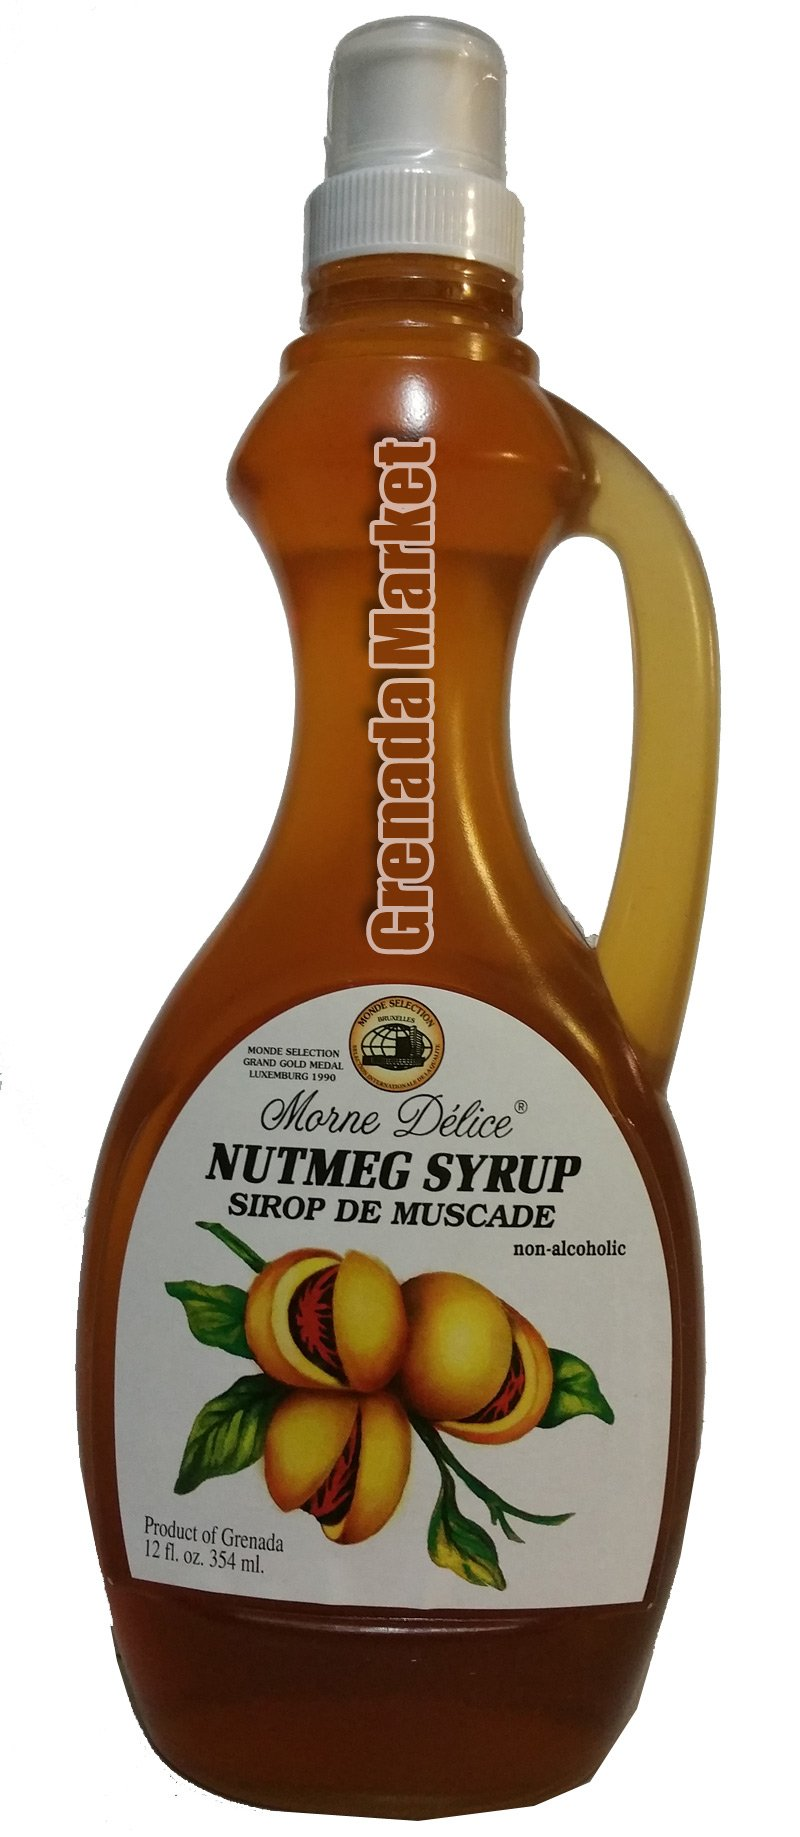 Nutmeg Syrup (Sirop de Muscade) Product of Grenada, Caribbean. by MORNE DELICE (Image #1)